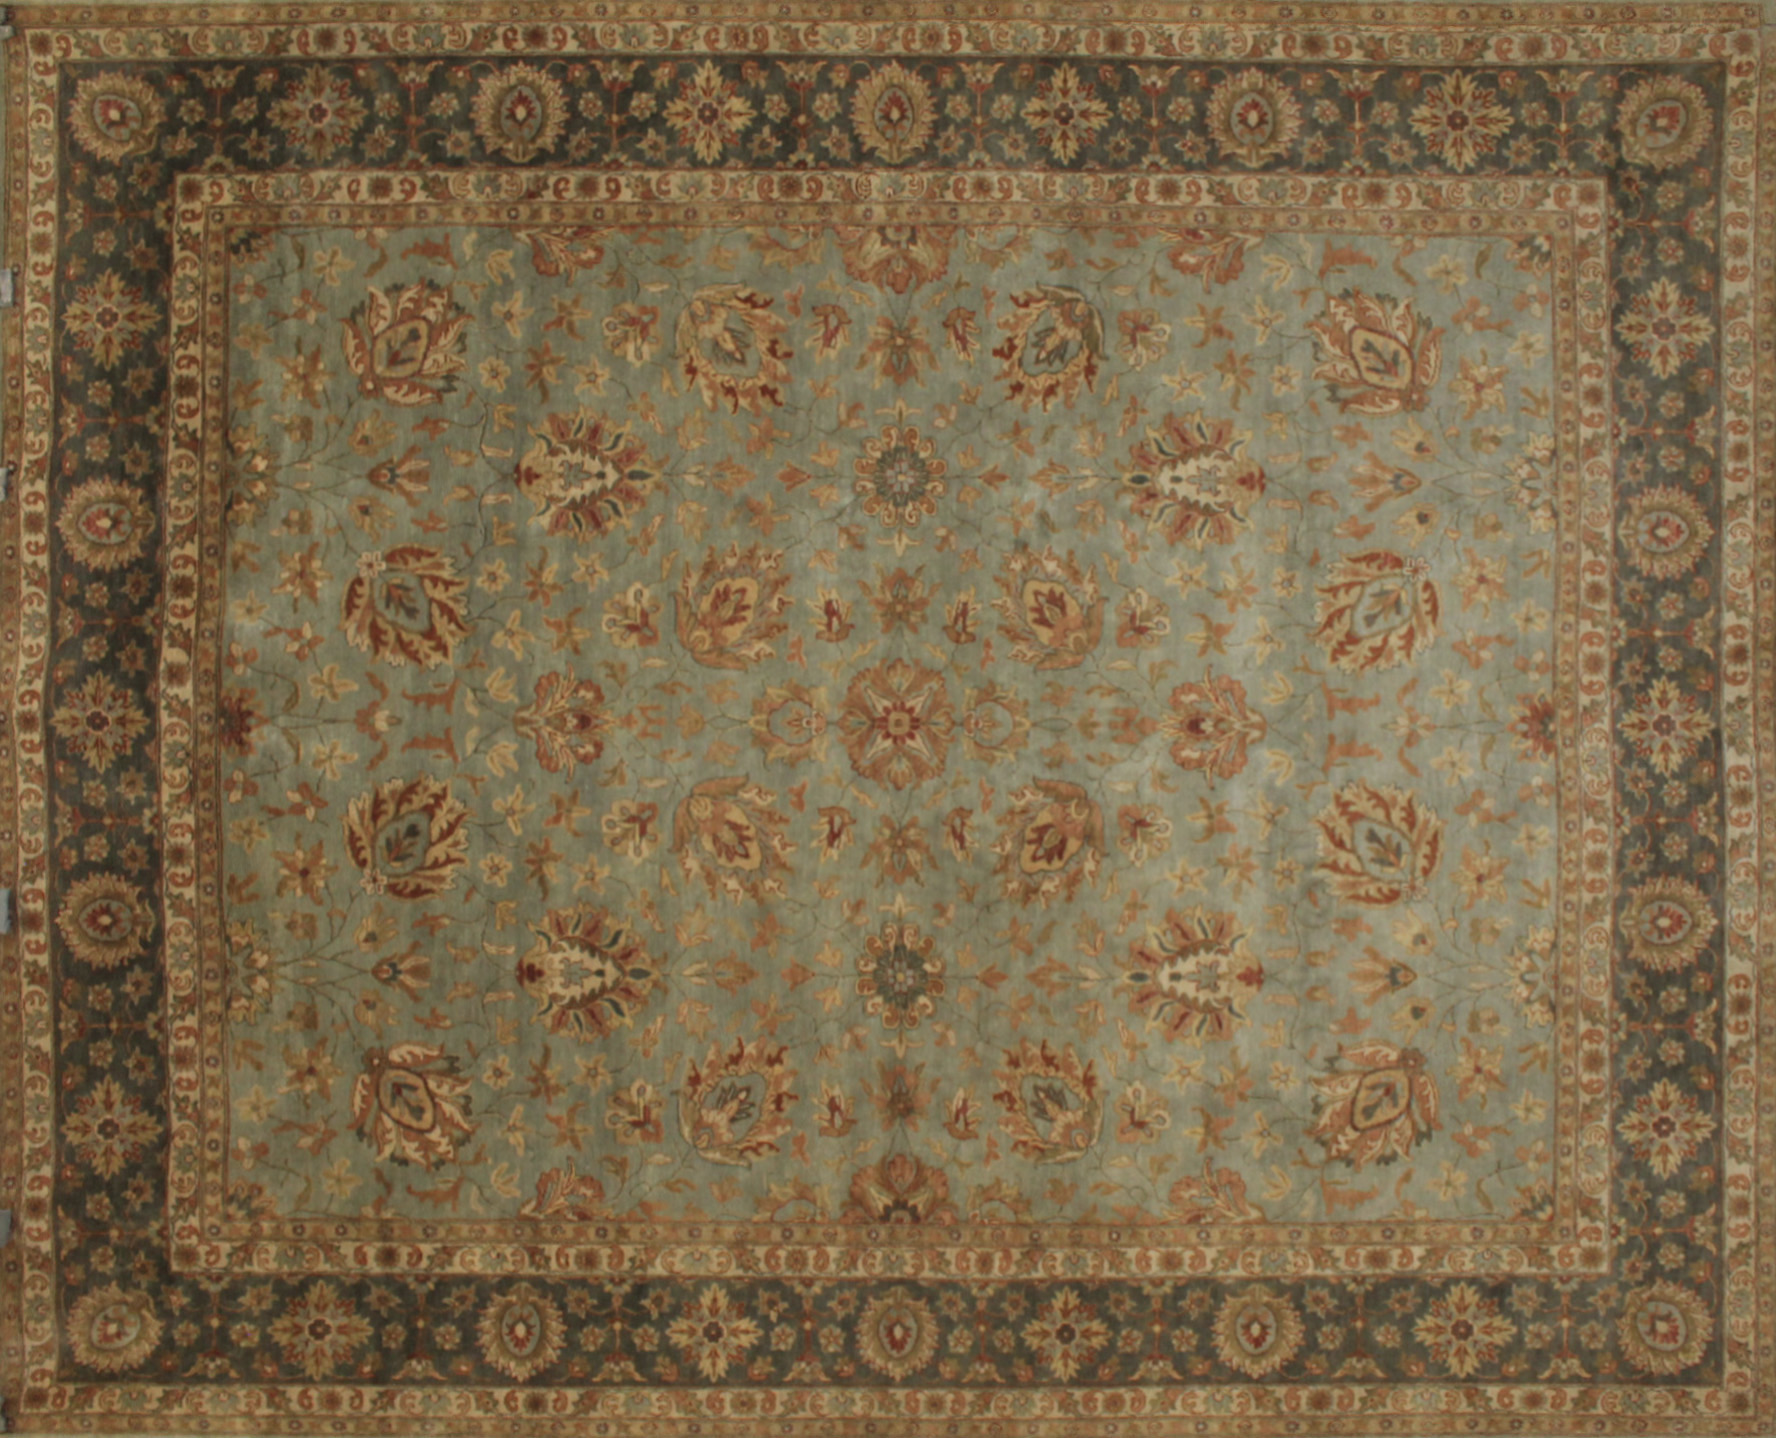 8x10 Traditional Hand Knotted Wool Area Rug - MR9550